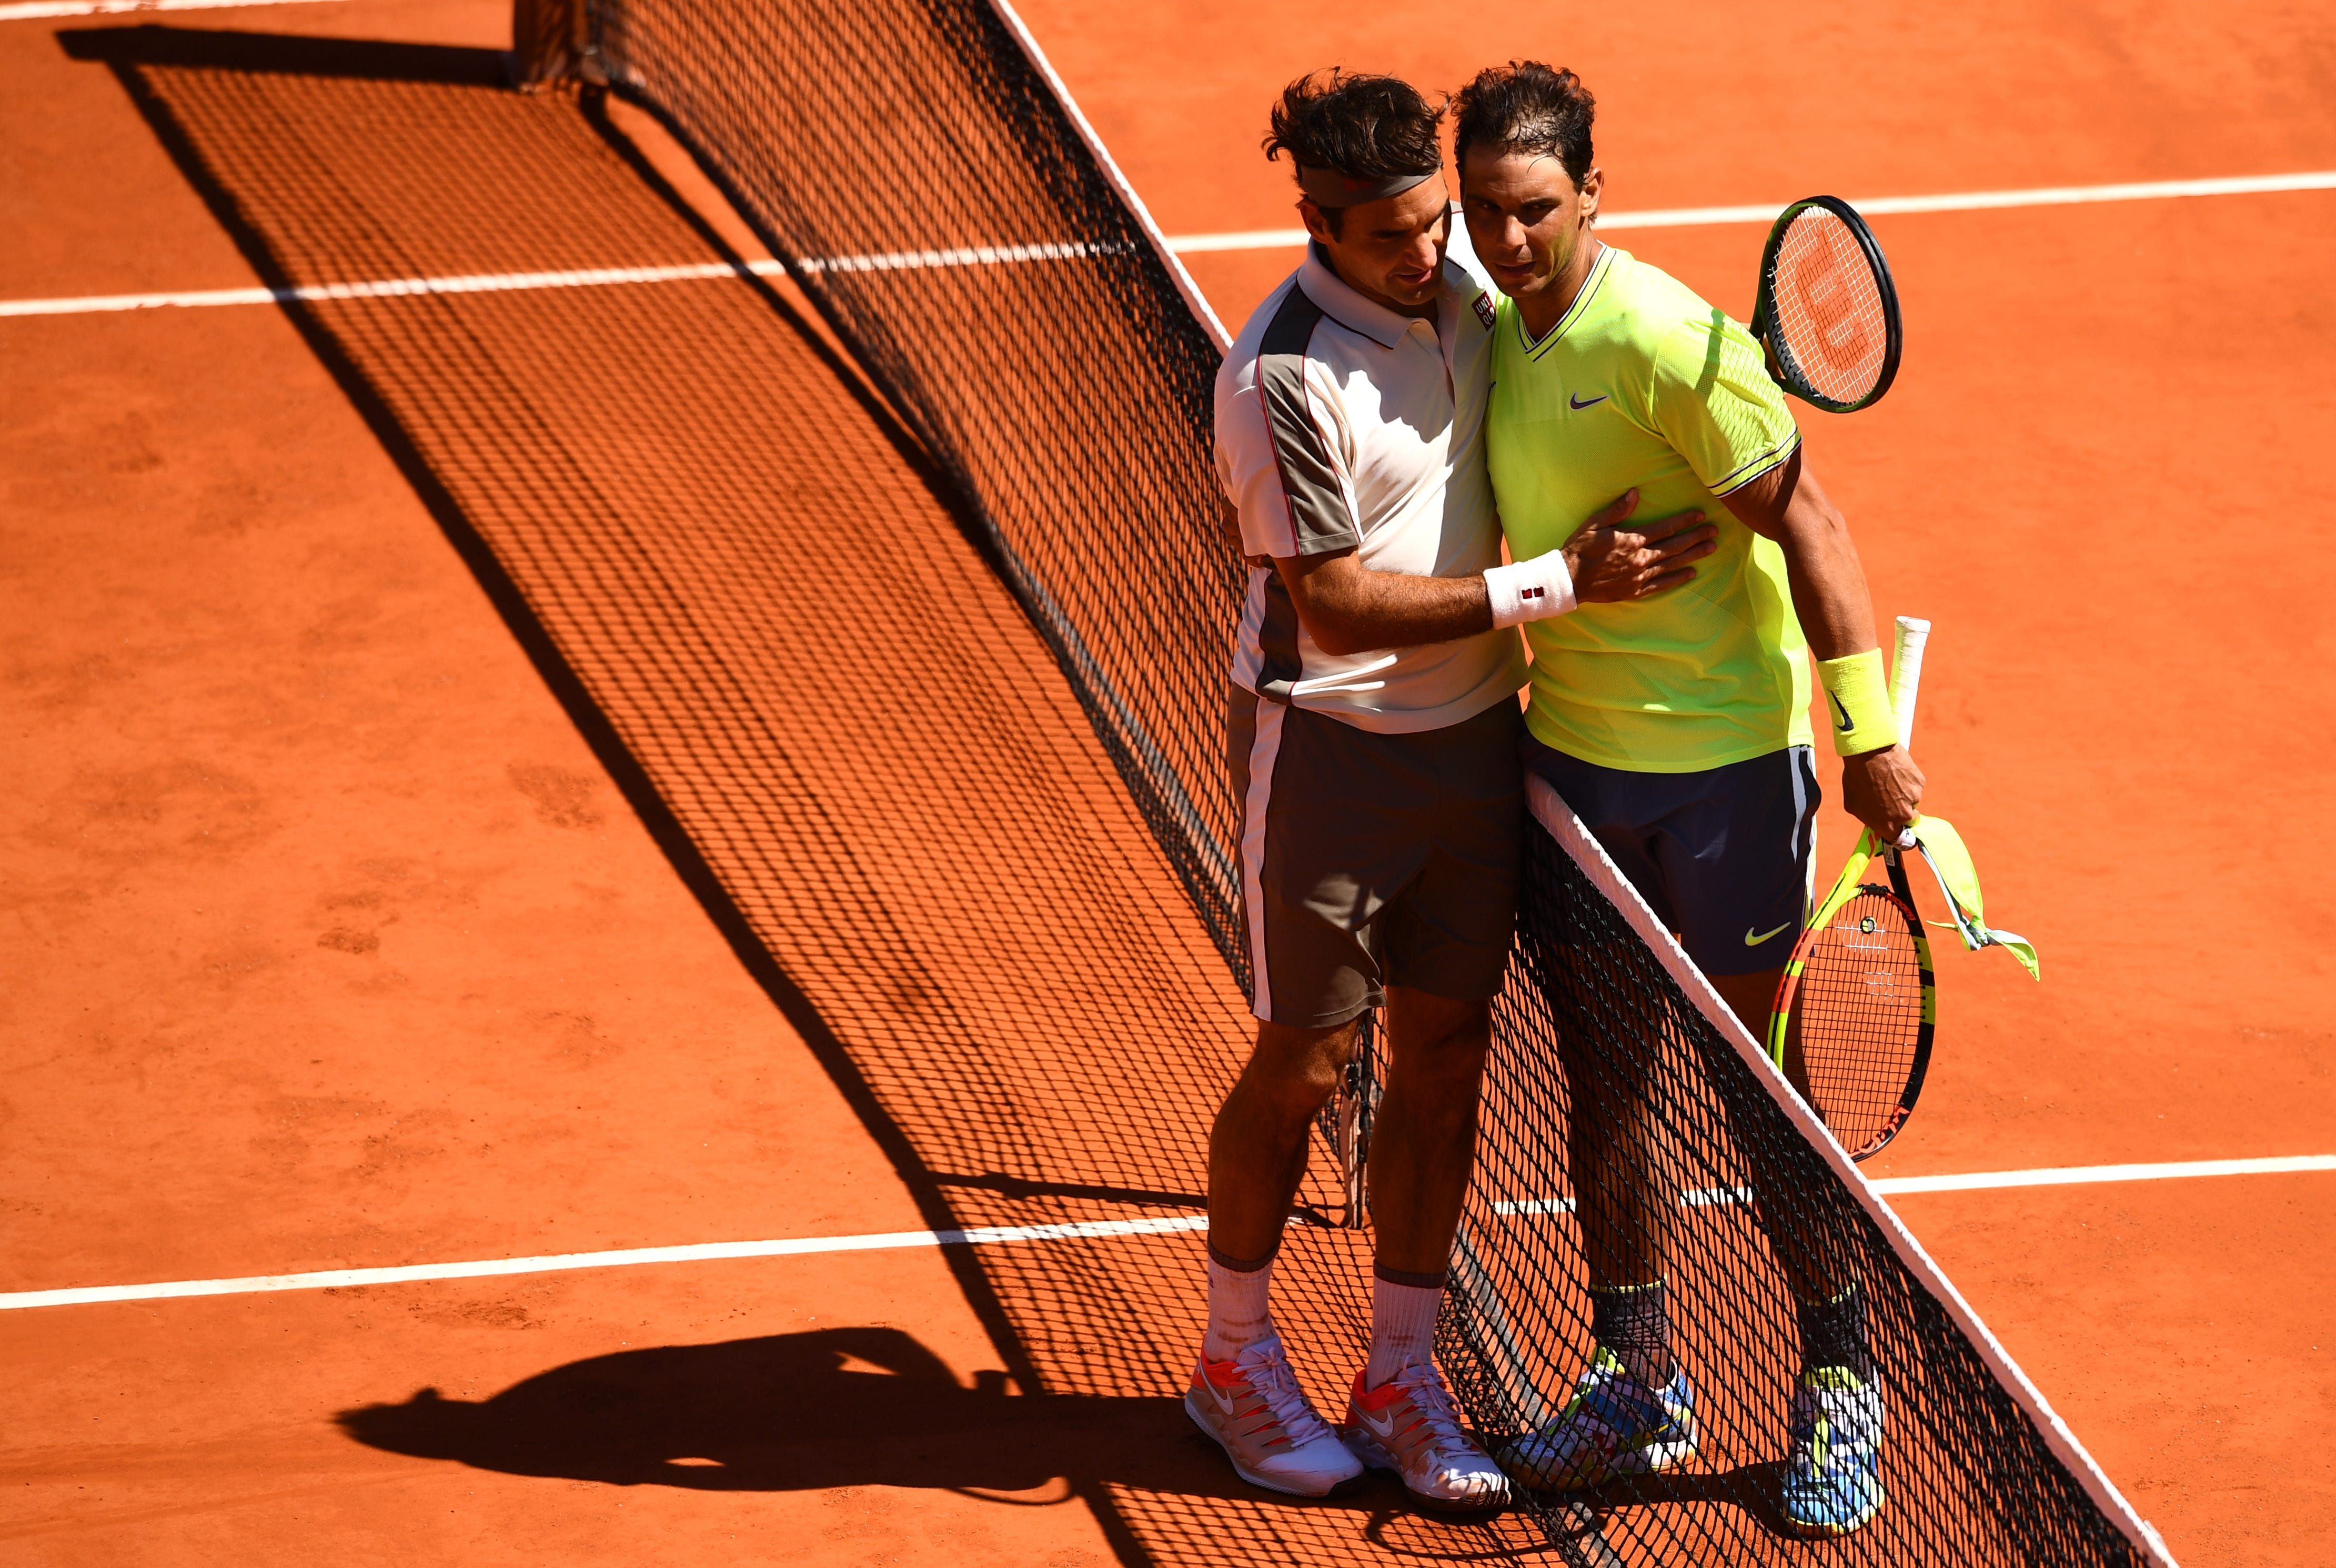 Rafael Nadal takes down Roger Federer in straight sets to reach French Open final